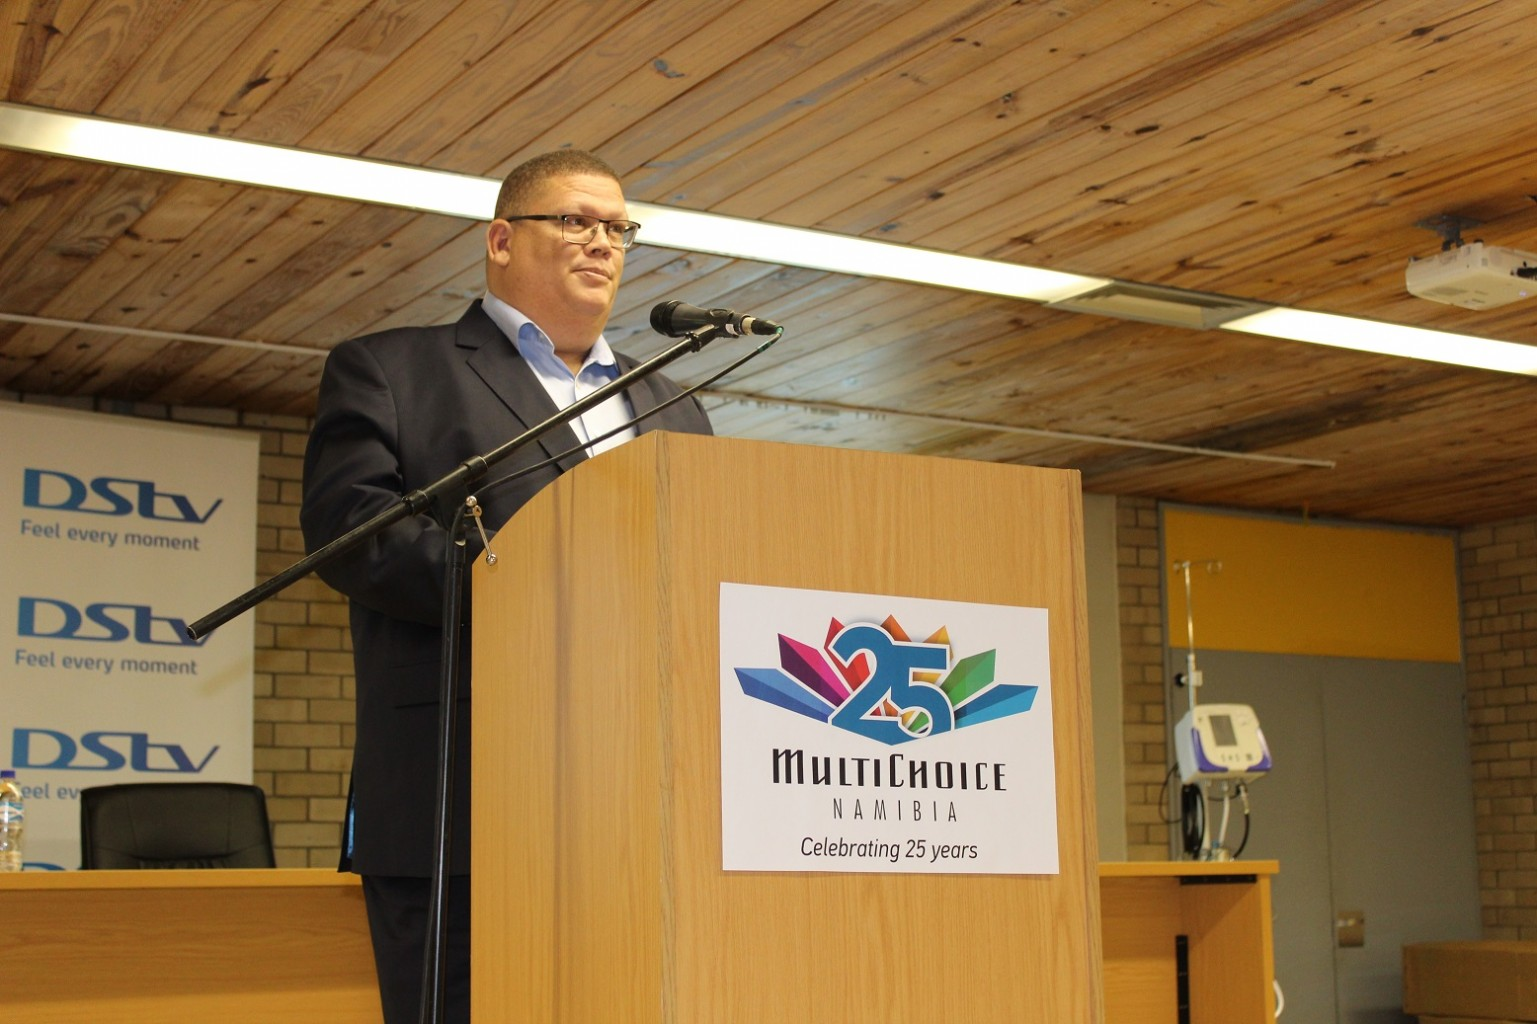 MESSAGE BY ROGER GERTZE, GENERAL MANAGER MULTICHOICE NAMIBIA